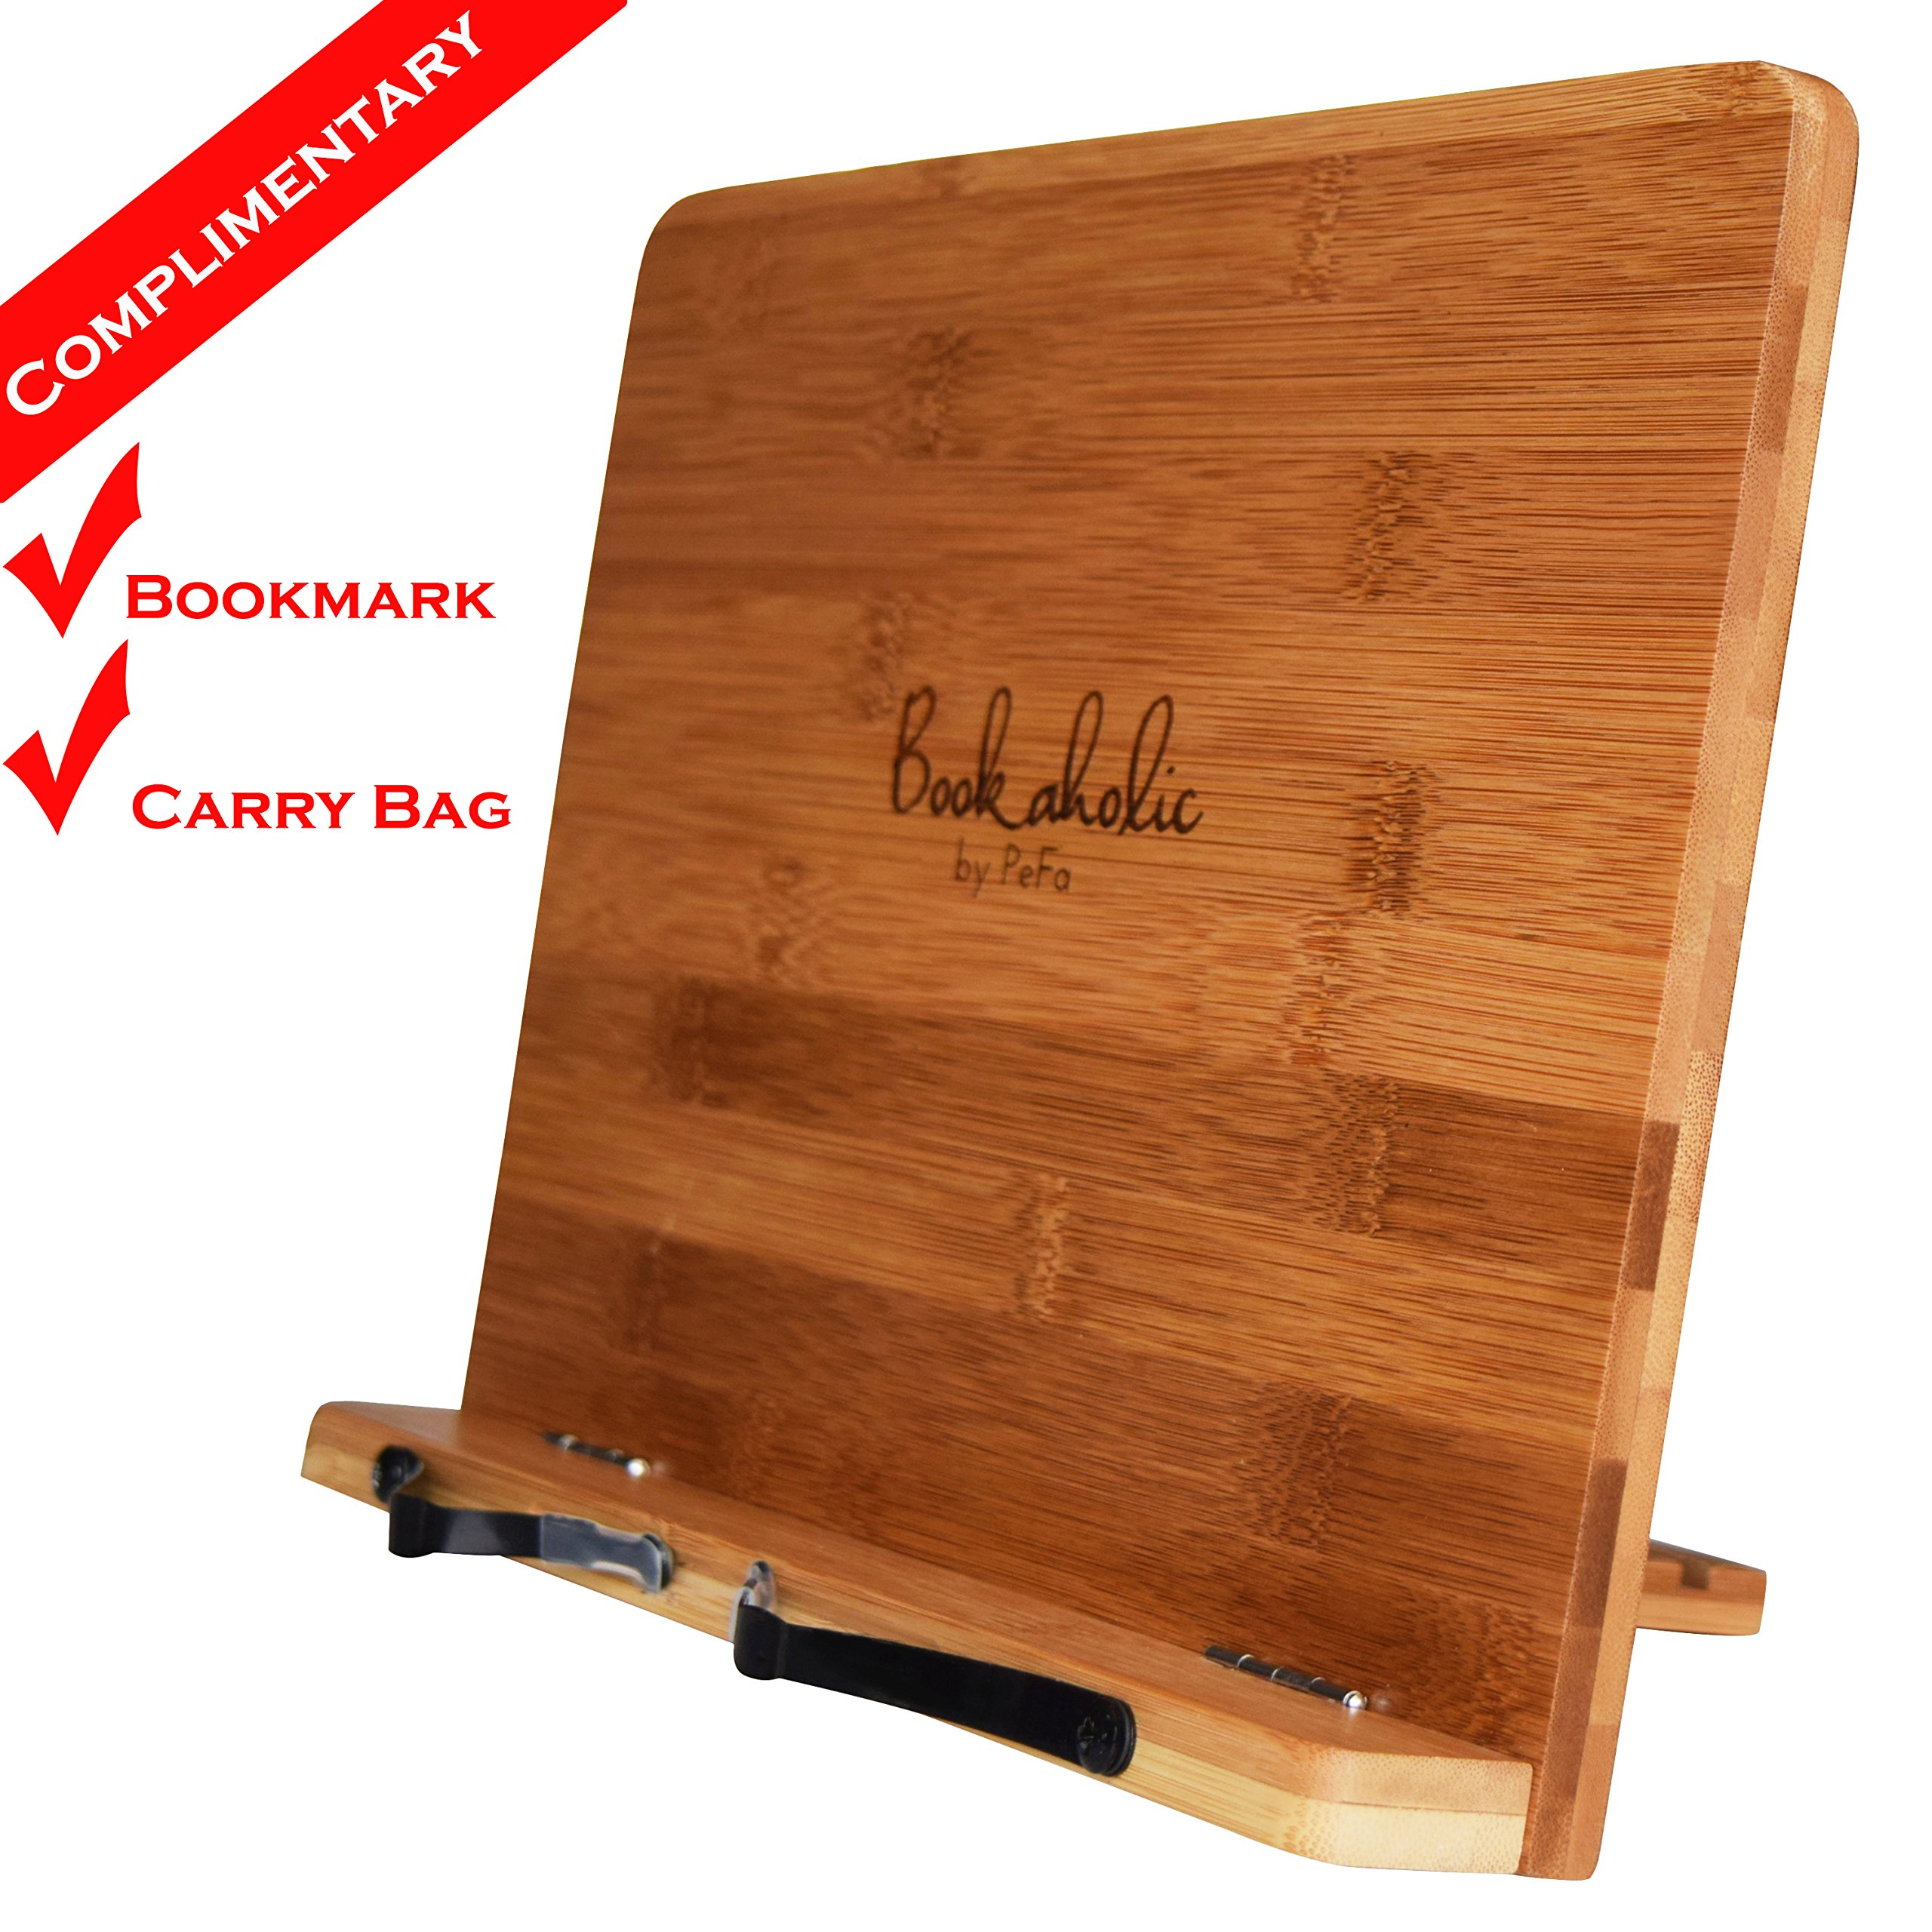 Bookaholic Bamboo Book Stand Cookbook Holder Book Rest Reading Stands Tablet Holders: The Tool to Enjoy Reading in a Healthy Posture by Bookaholic